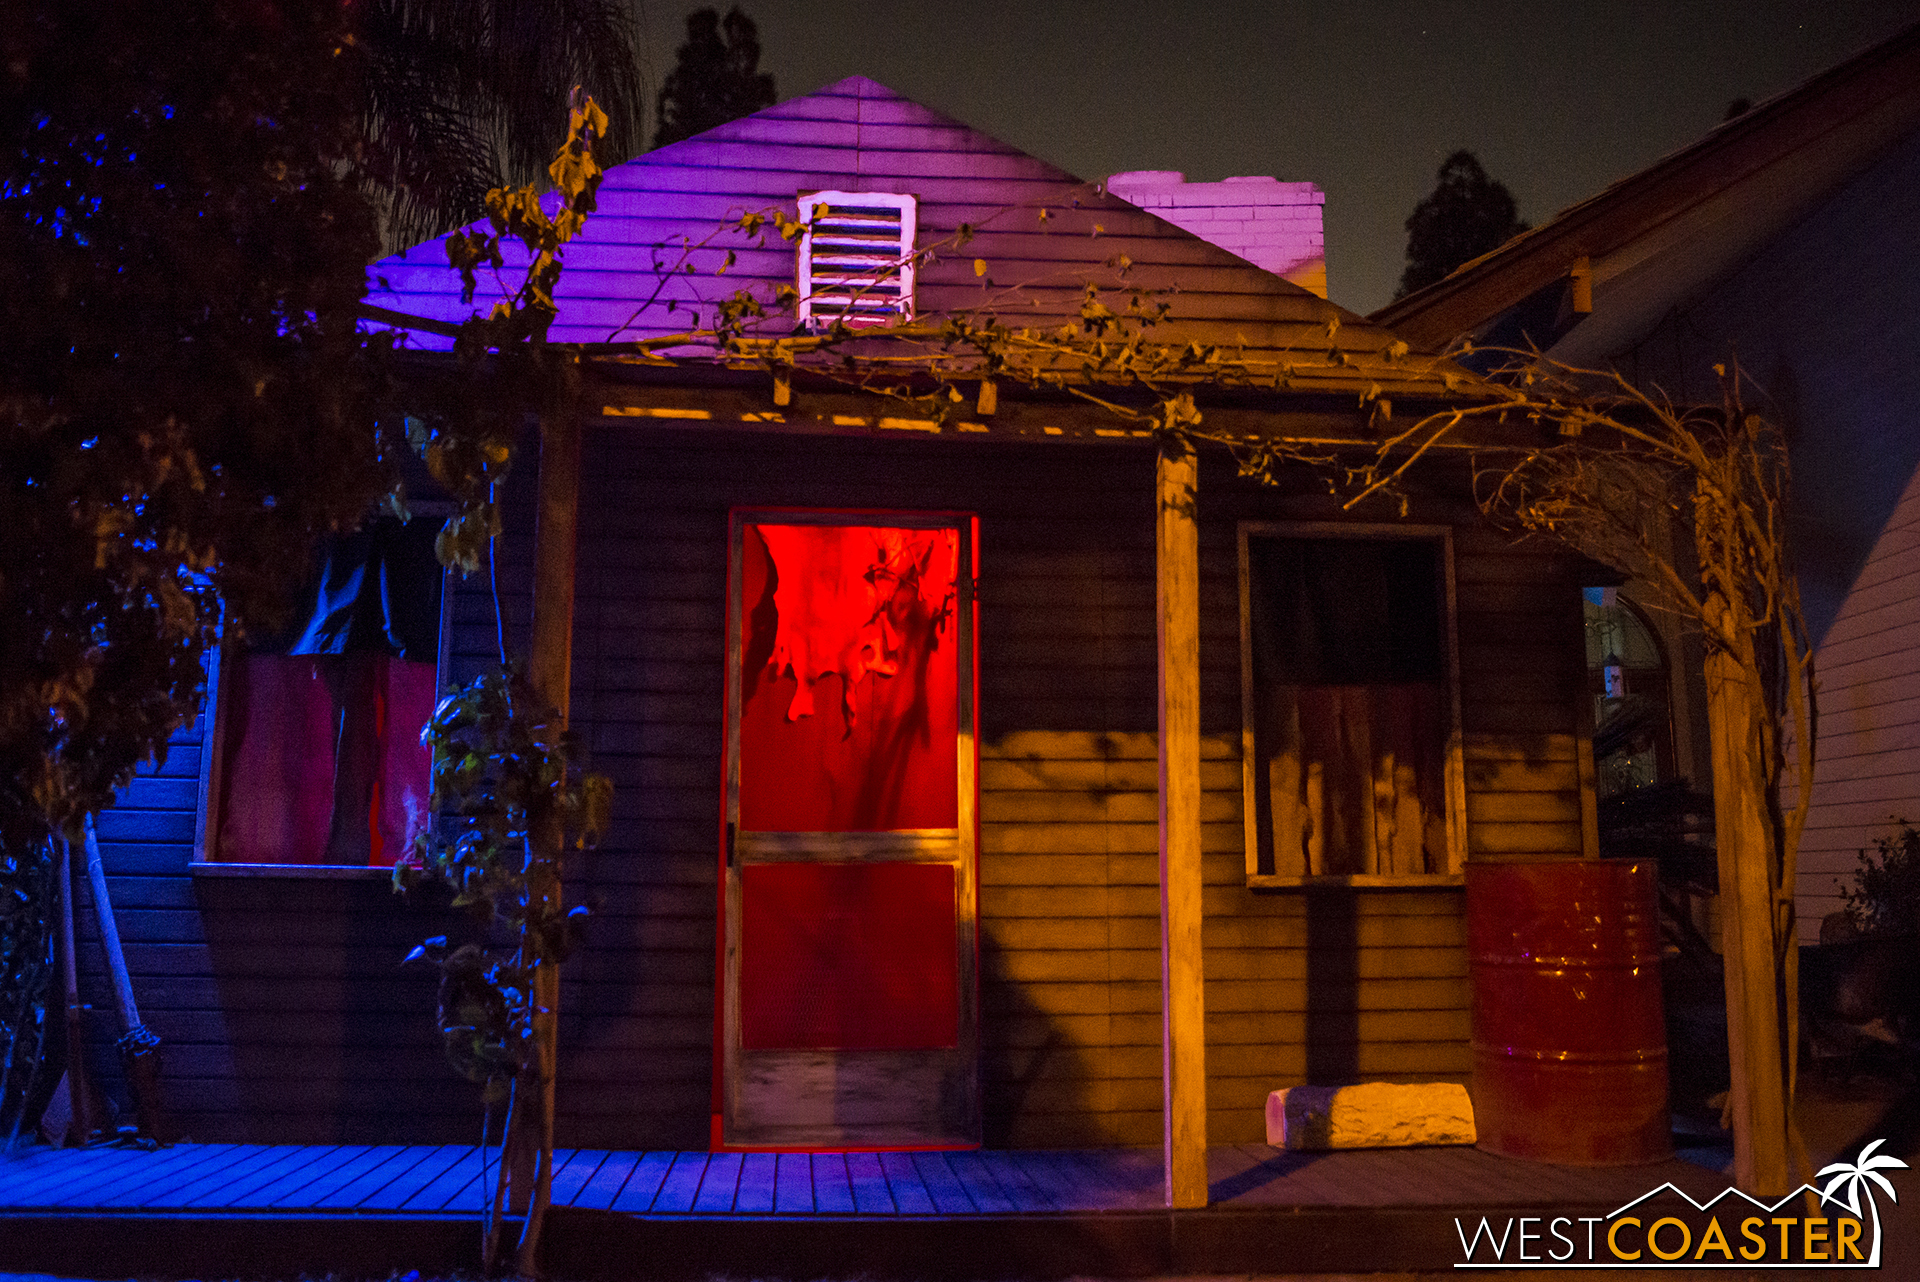 No big deal for this haunted yard display. They only just, I don't know, CONSTRUCTED A WHOLE FREAKING FACADE FOR IT!!